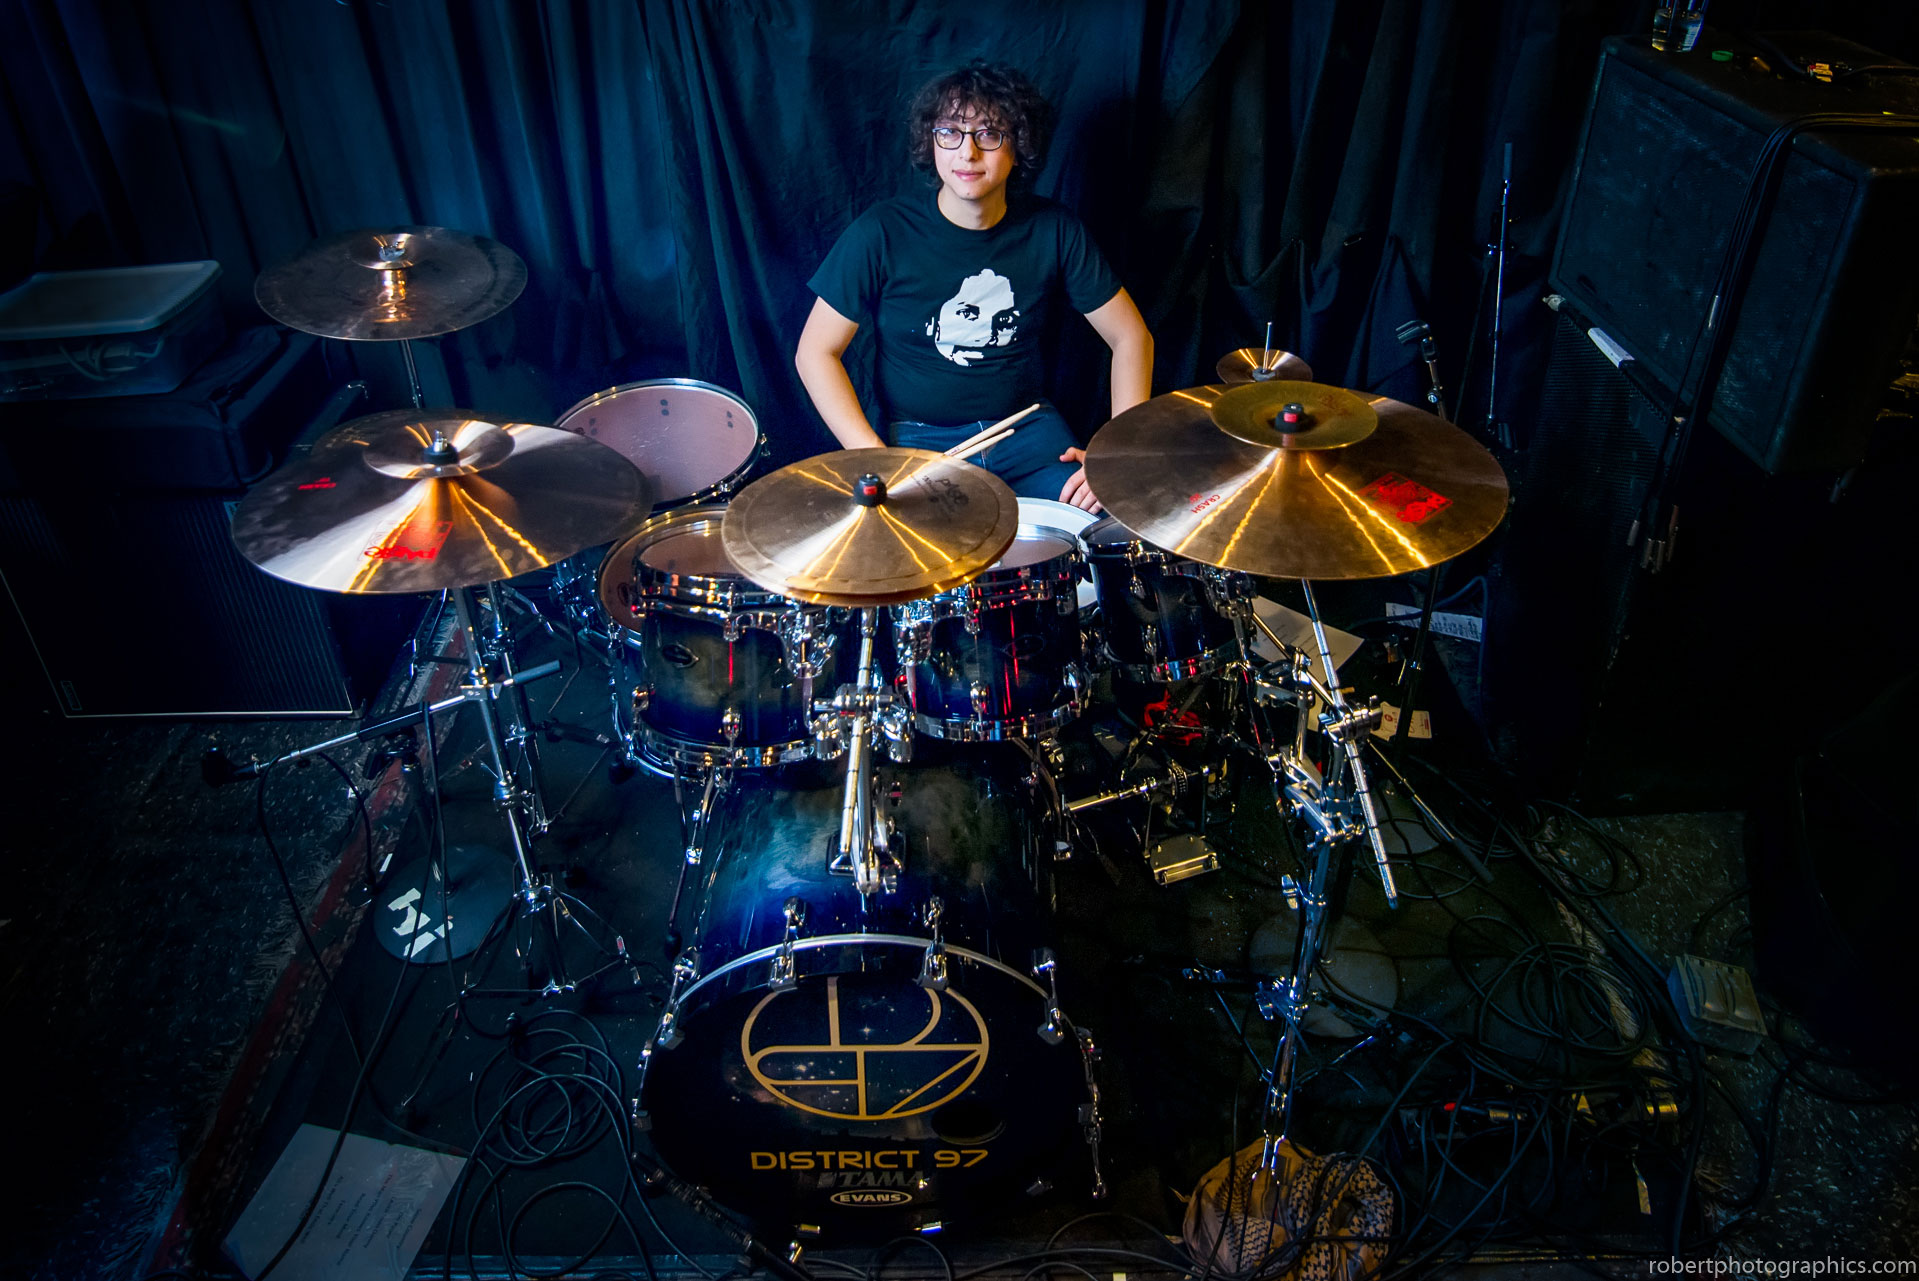 Drummer Blog: District 97's Jonathan Schang on Mini-Rock Opera, Tours, and Upcoming Album